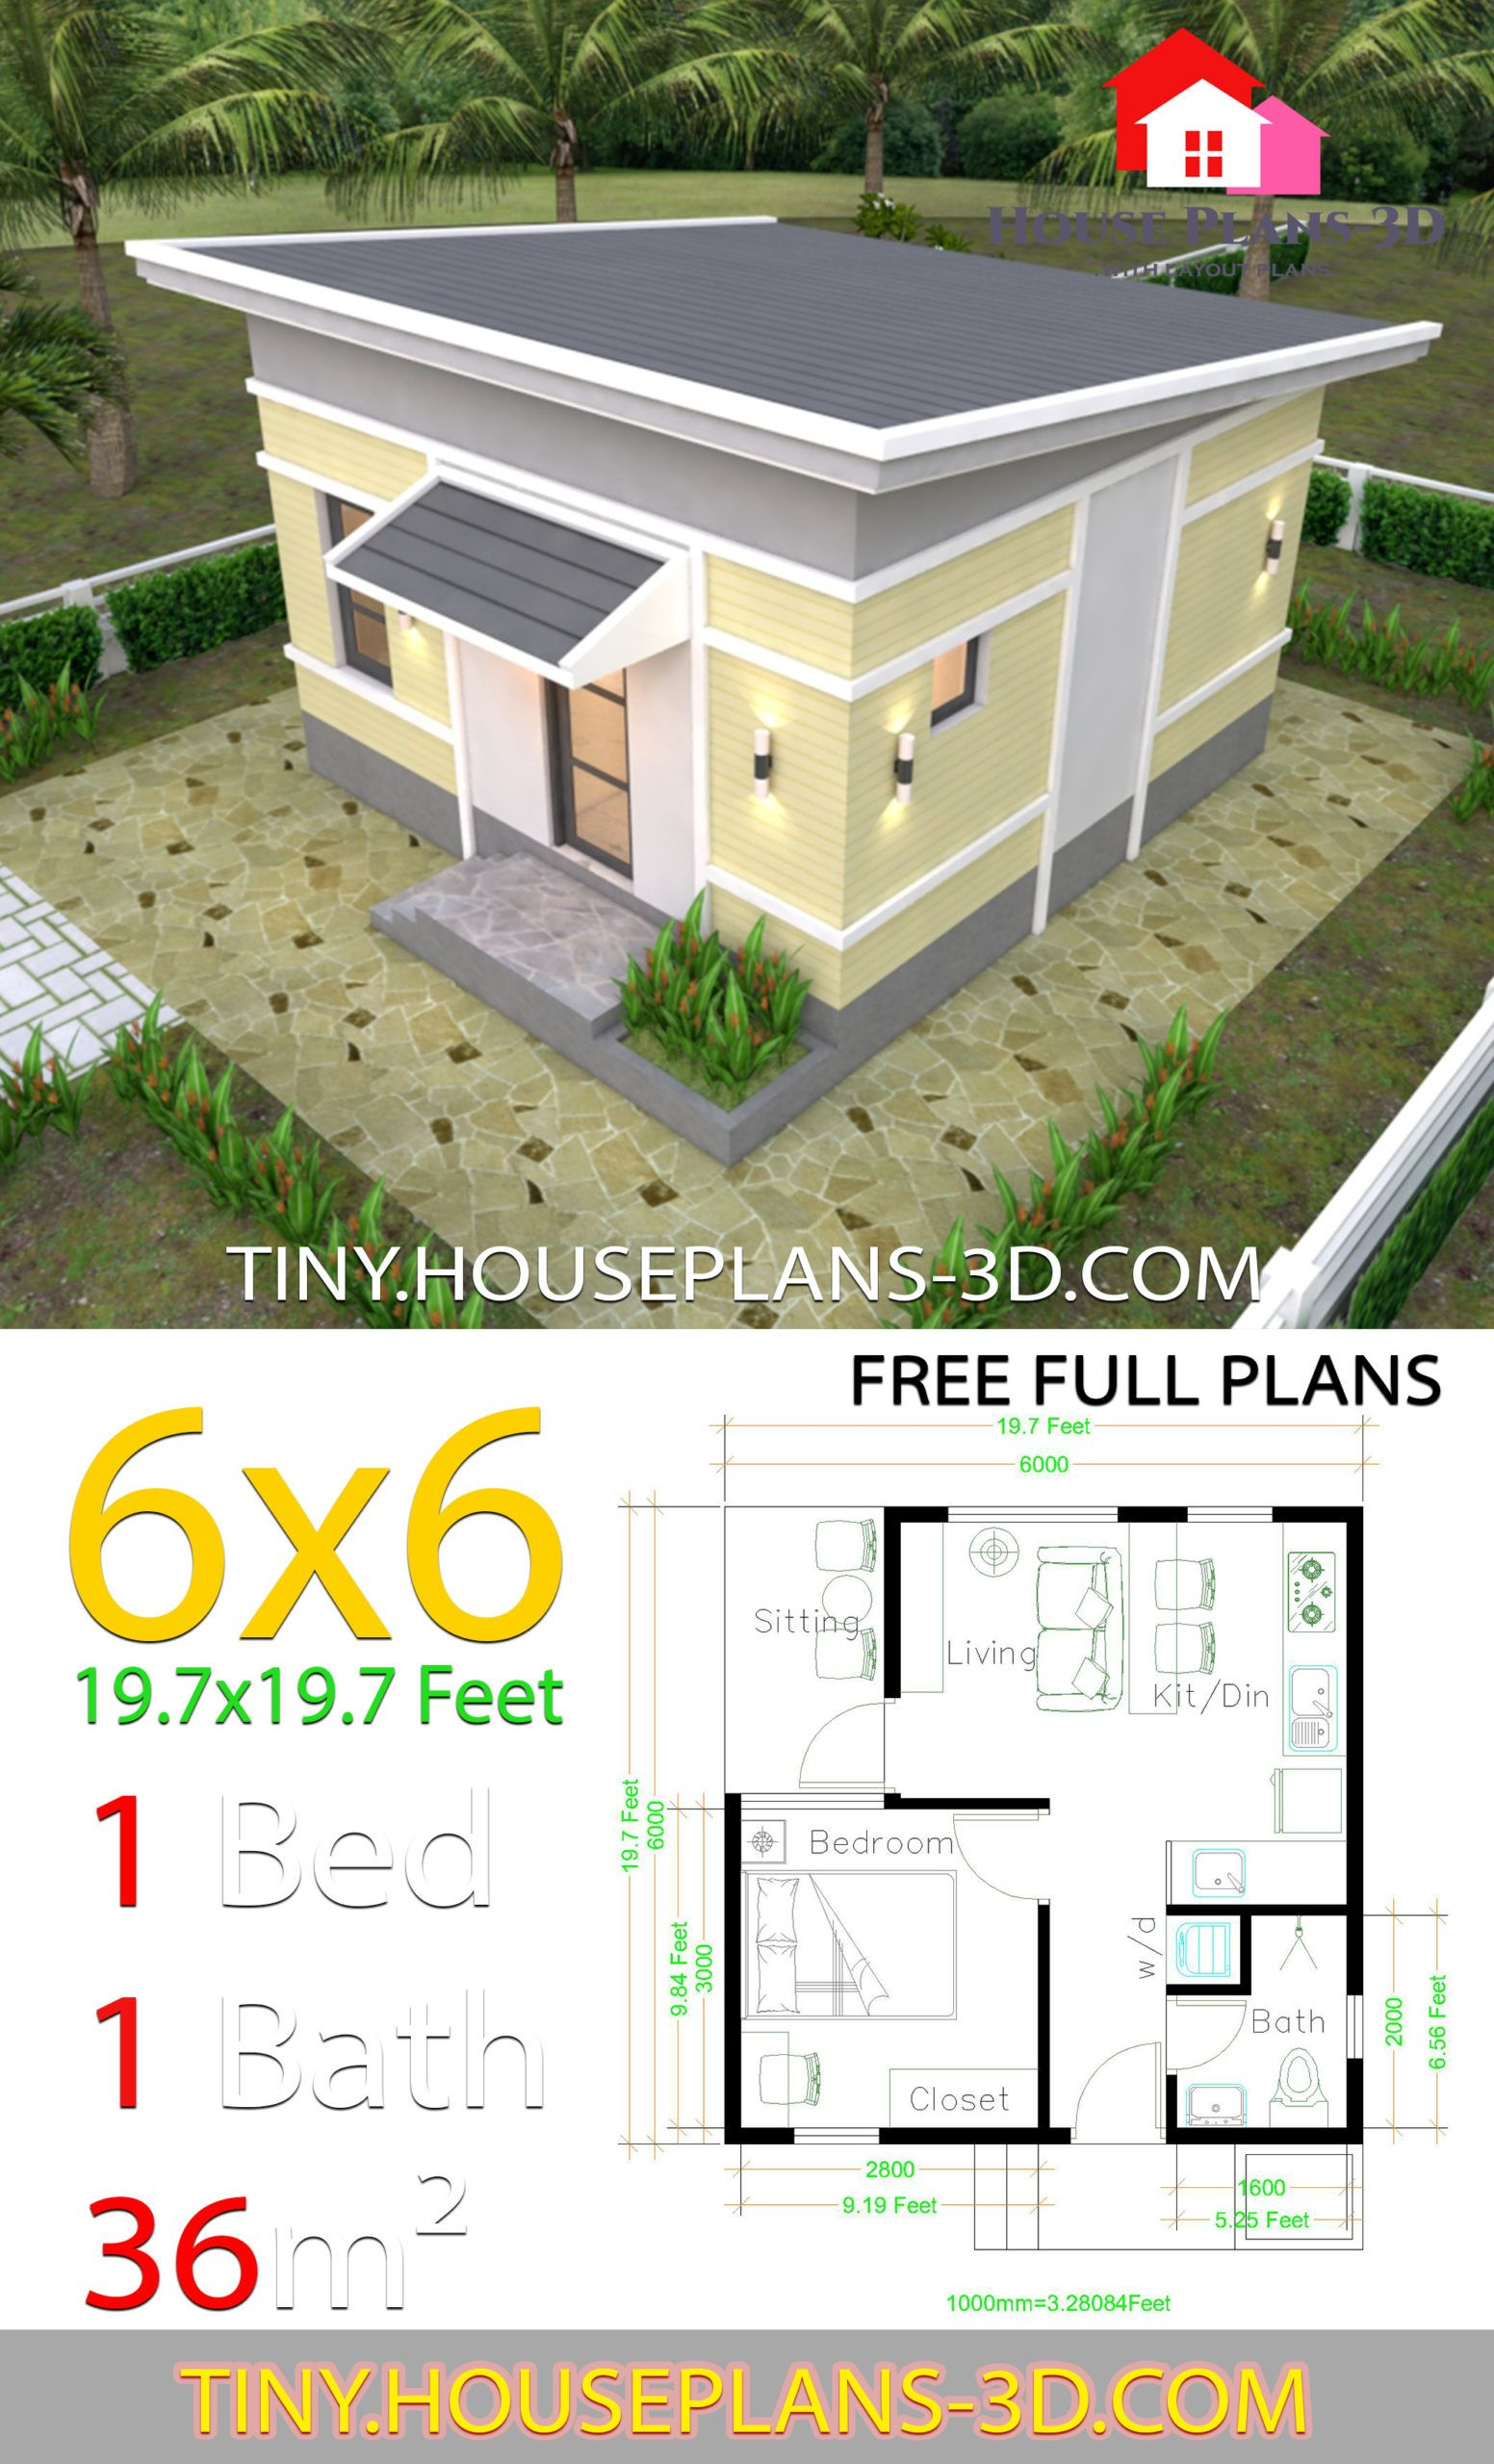 One Bedroom House Plans 6x6 With Shed Roof House Plans 3d In 2020 One Bedroom House Plans House Roof House Plans